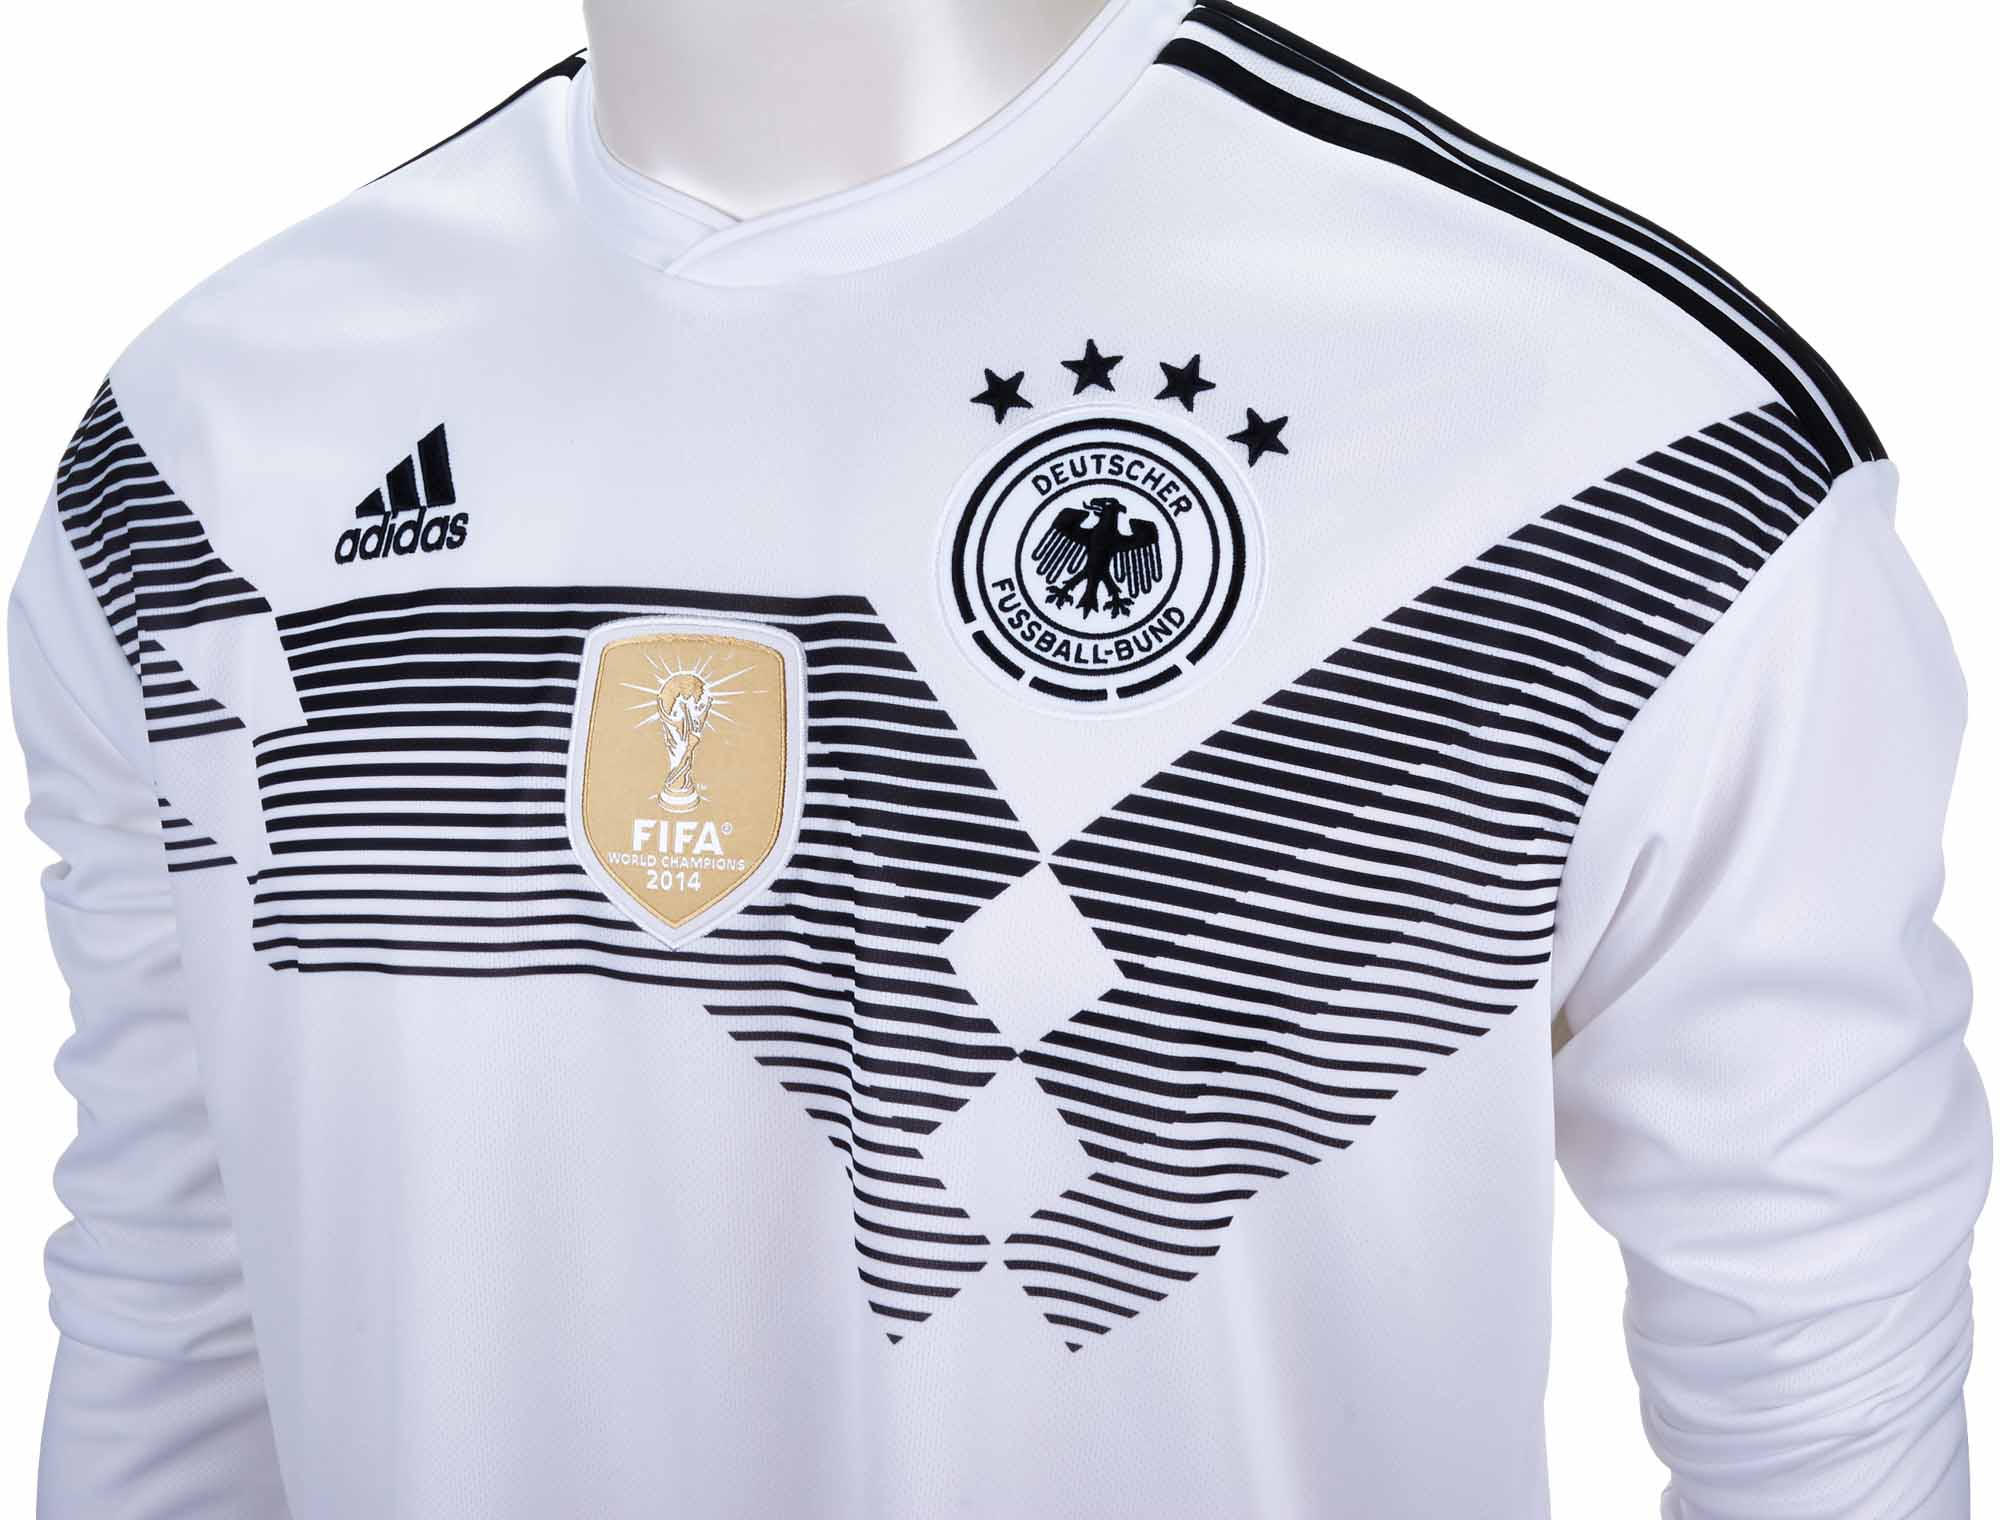 Adidas germany l s home jersey 2018 19 for Germany mercedes benz soccer jersey